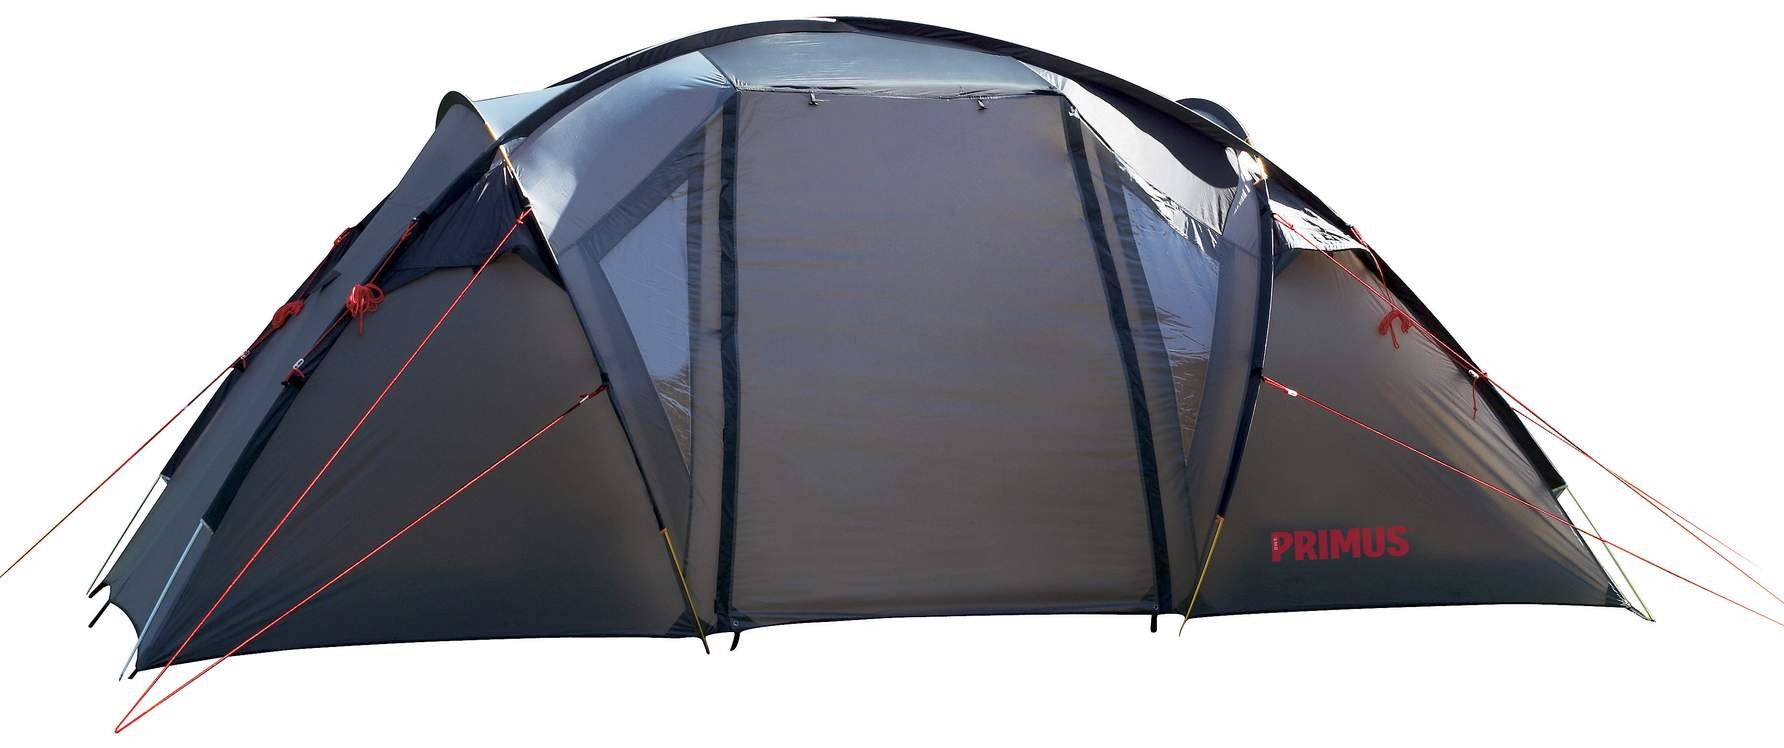 Палатка Primus Bifrost H6 Tent for 6 persons - Фото 1 большая